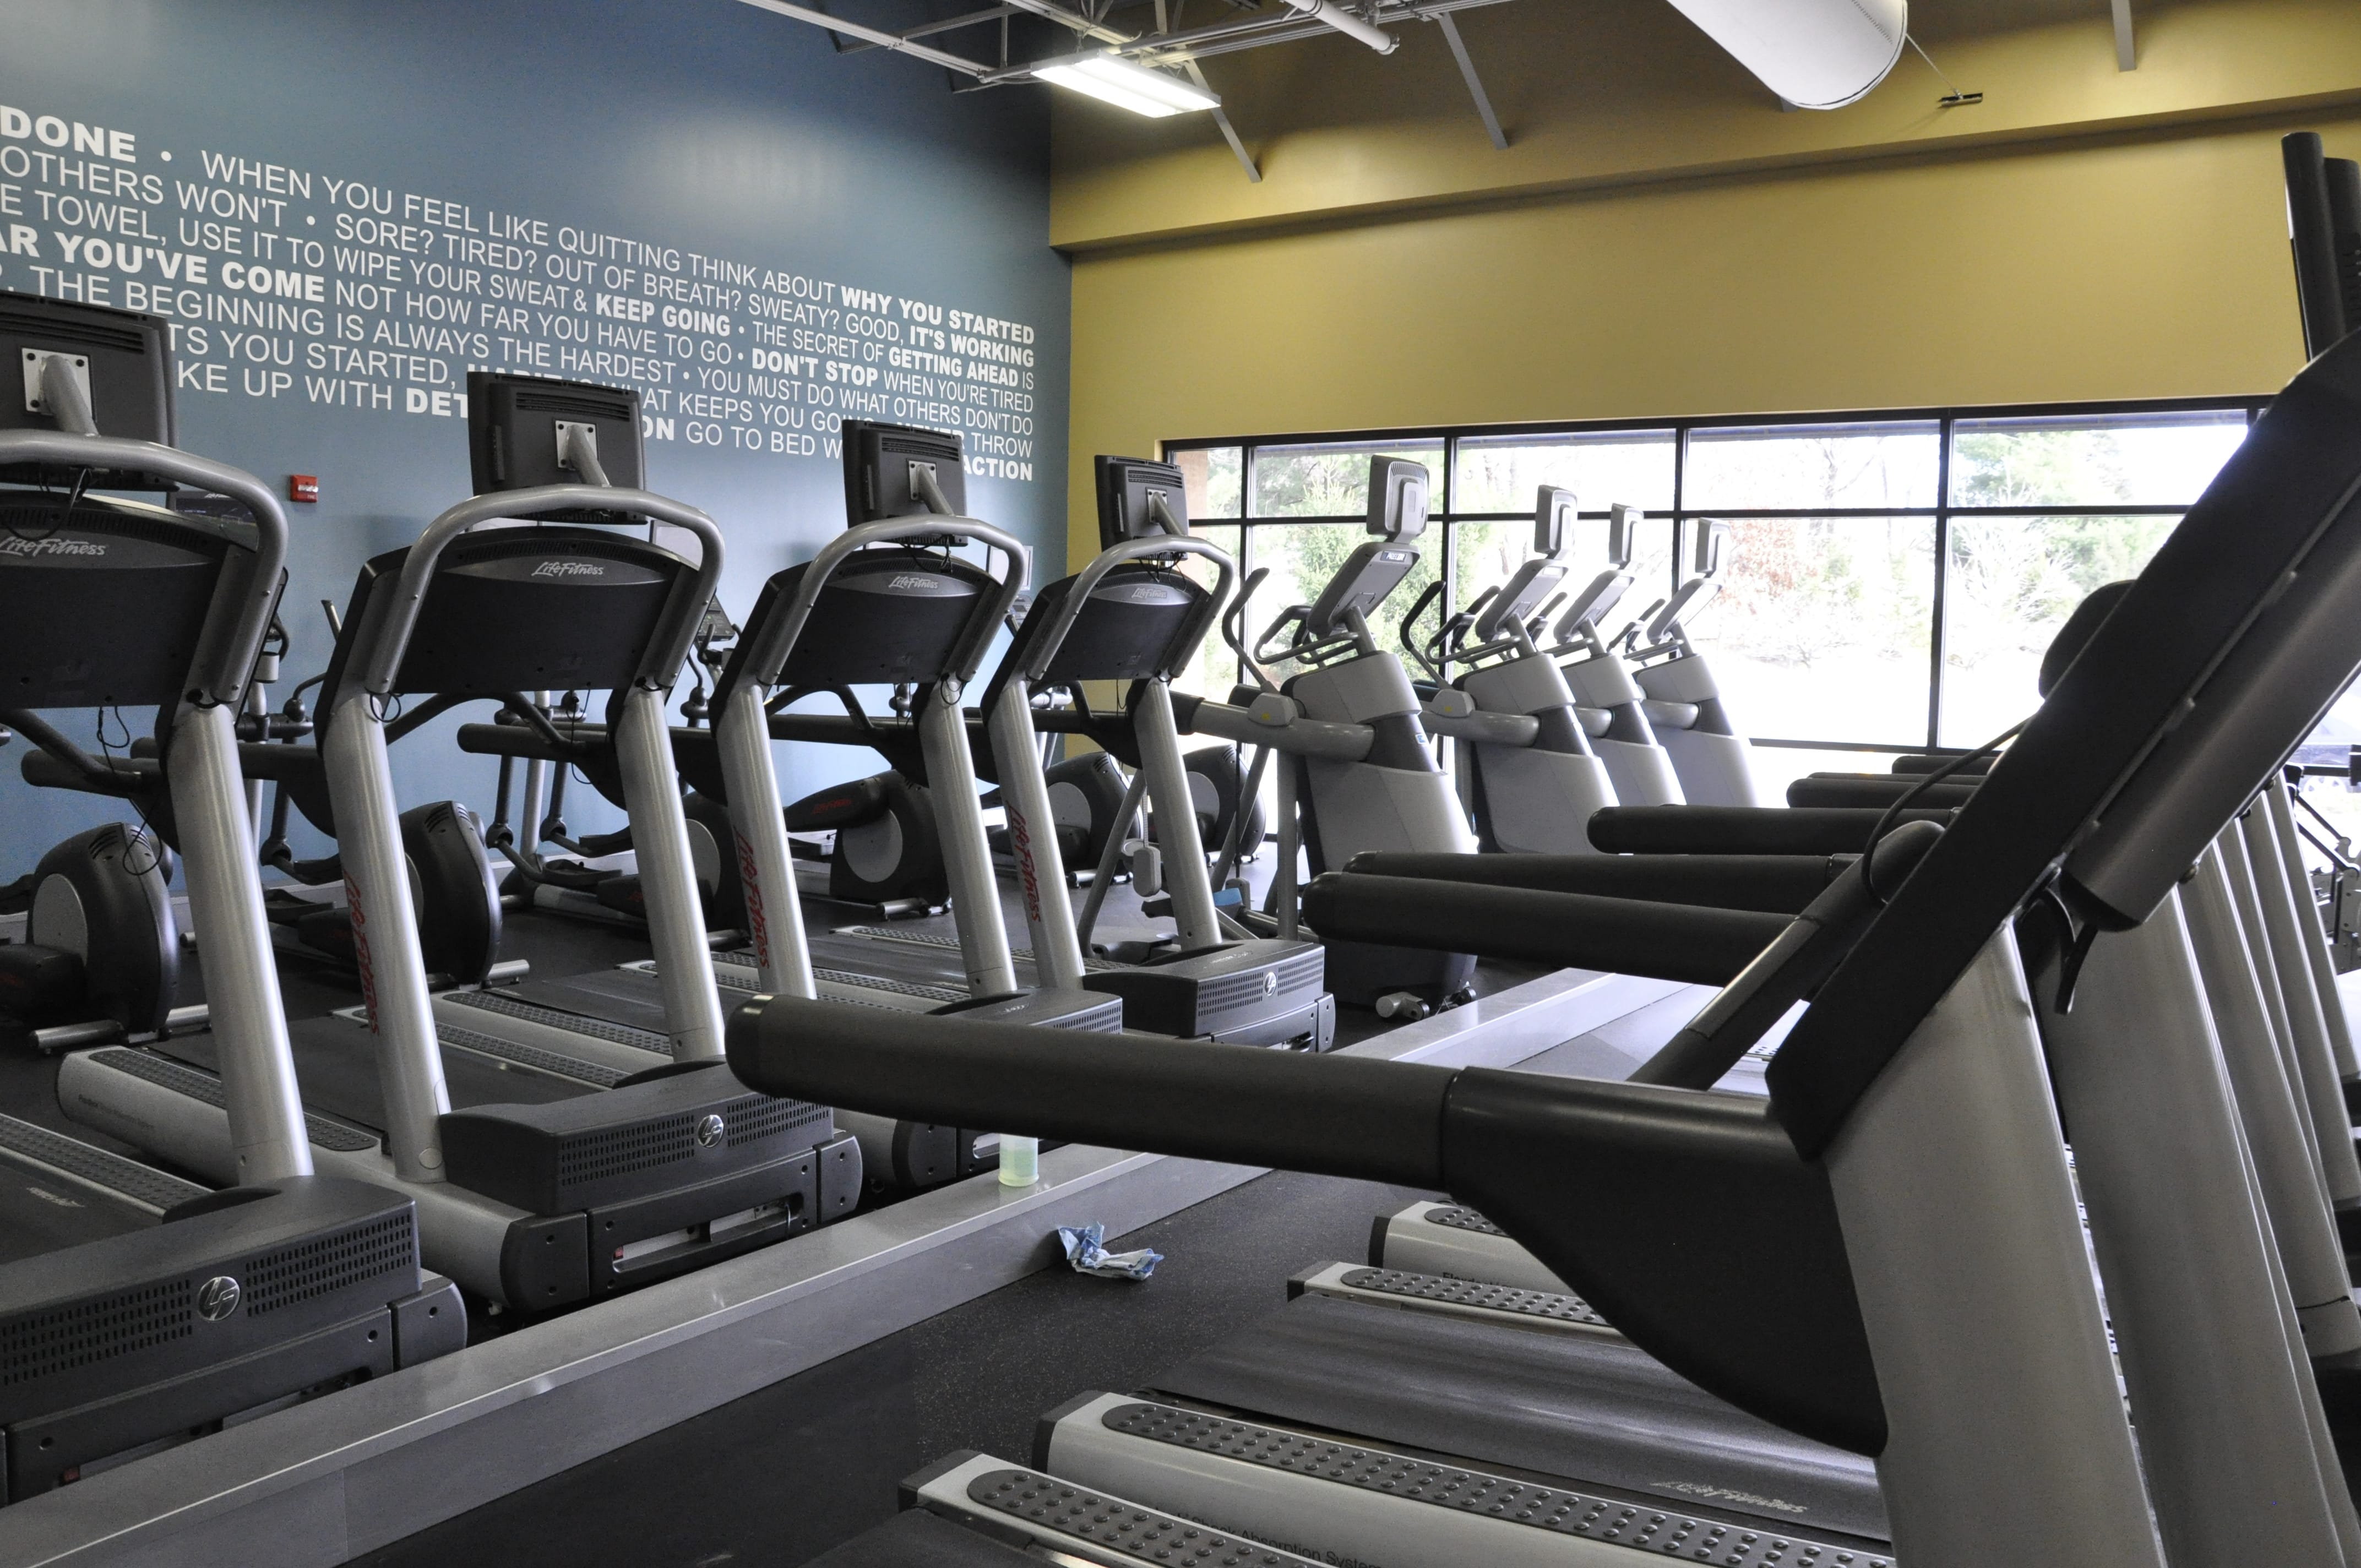 Club Fitness image 2